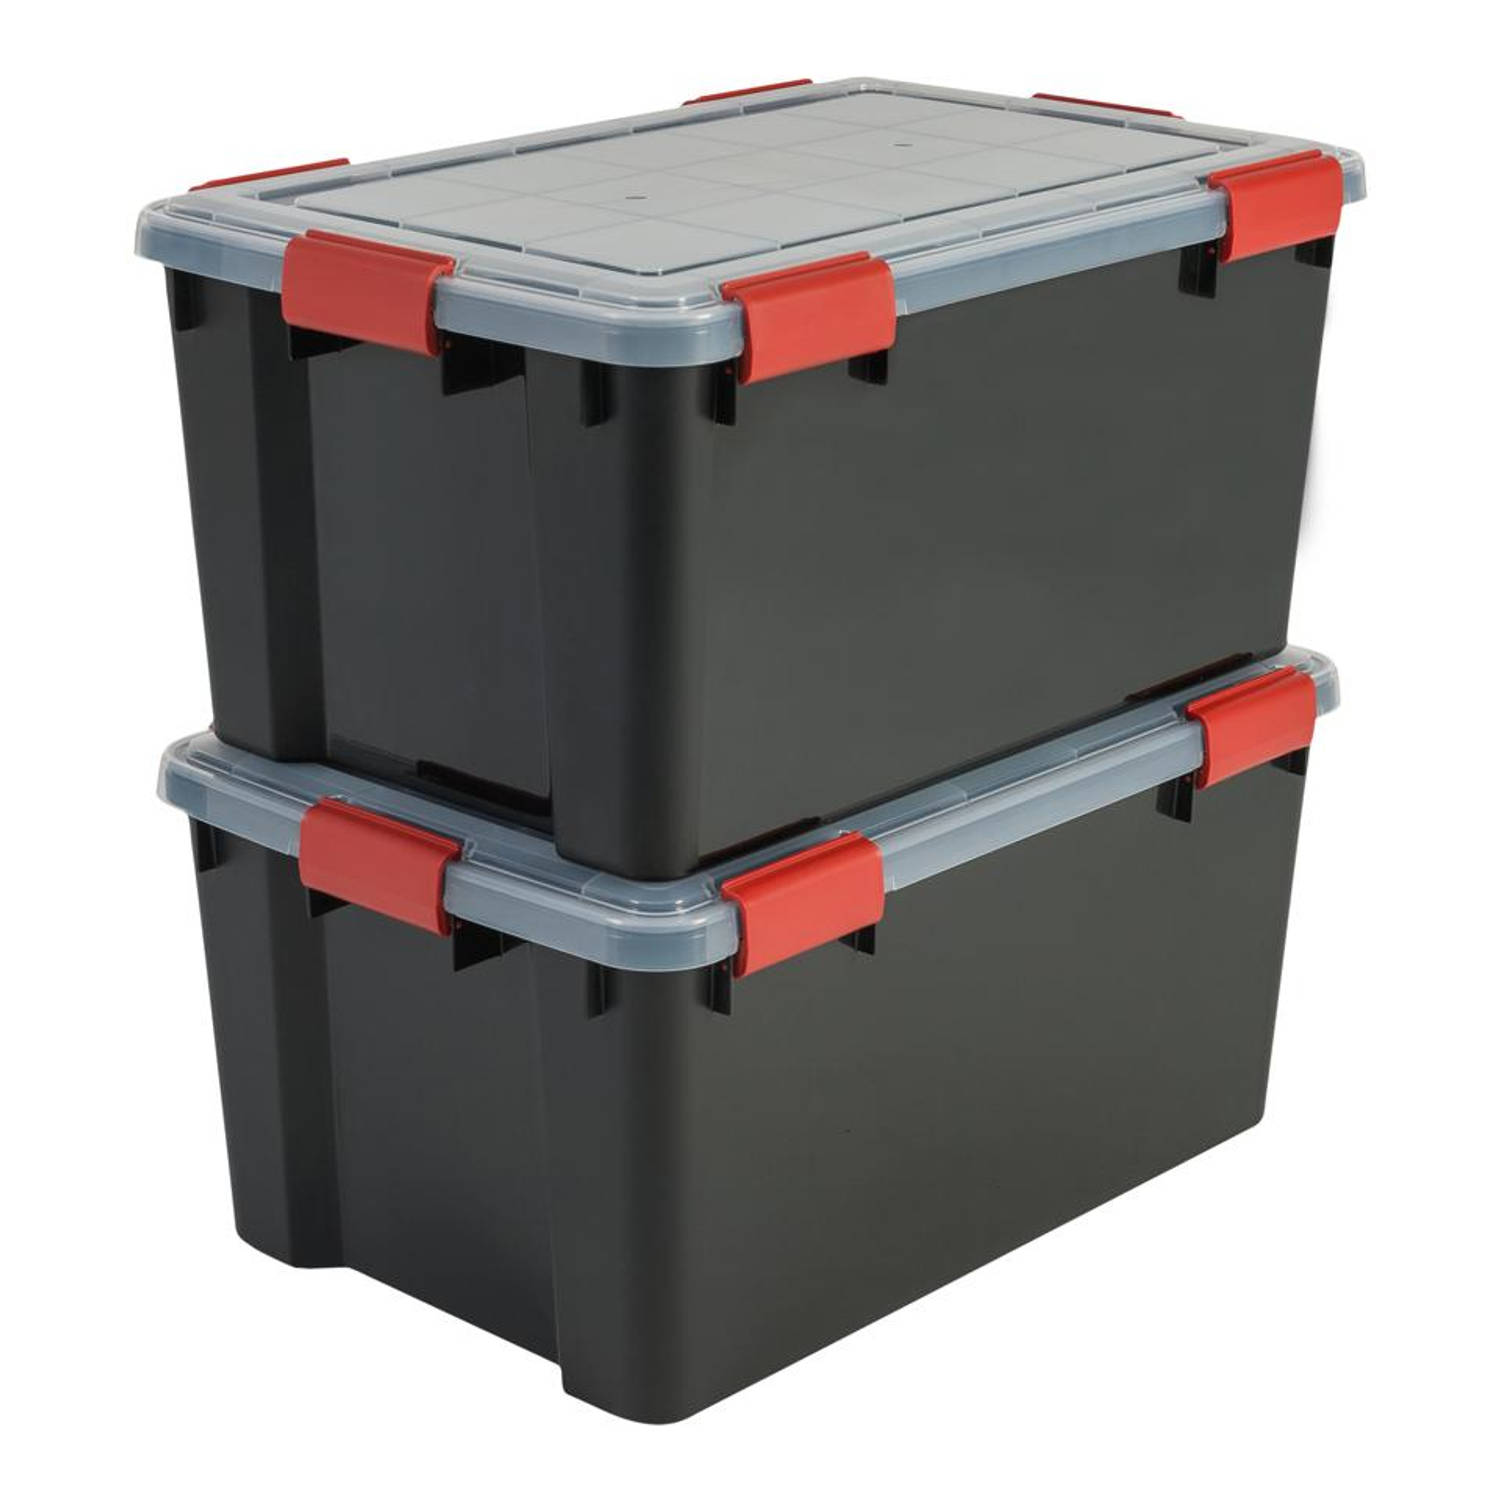 Iris Air Tight Box opbergbox - 50 liter - transparant